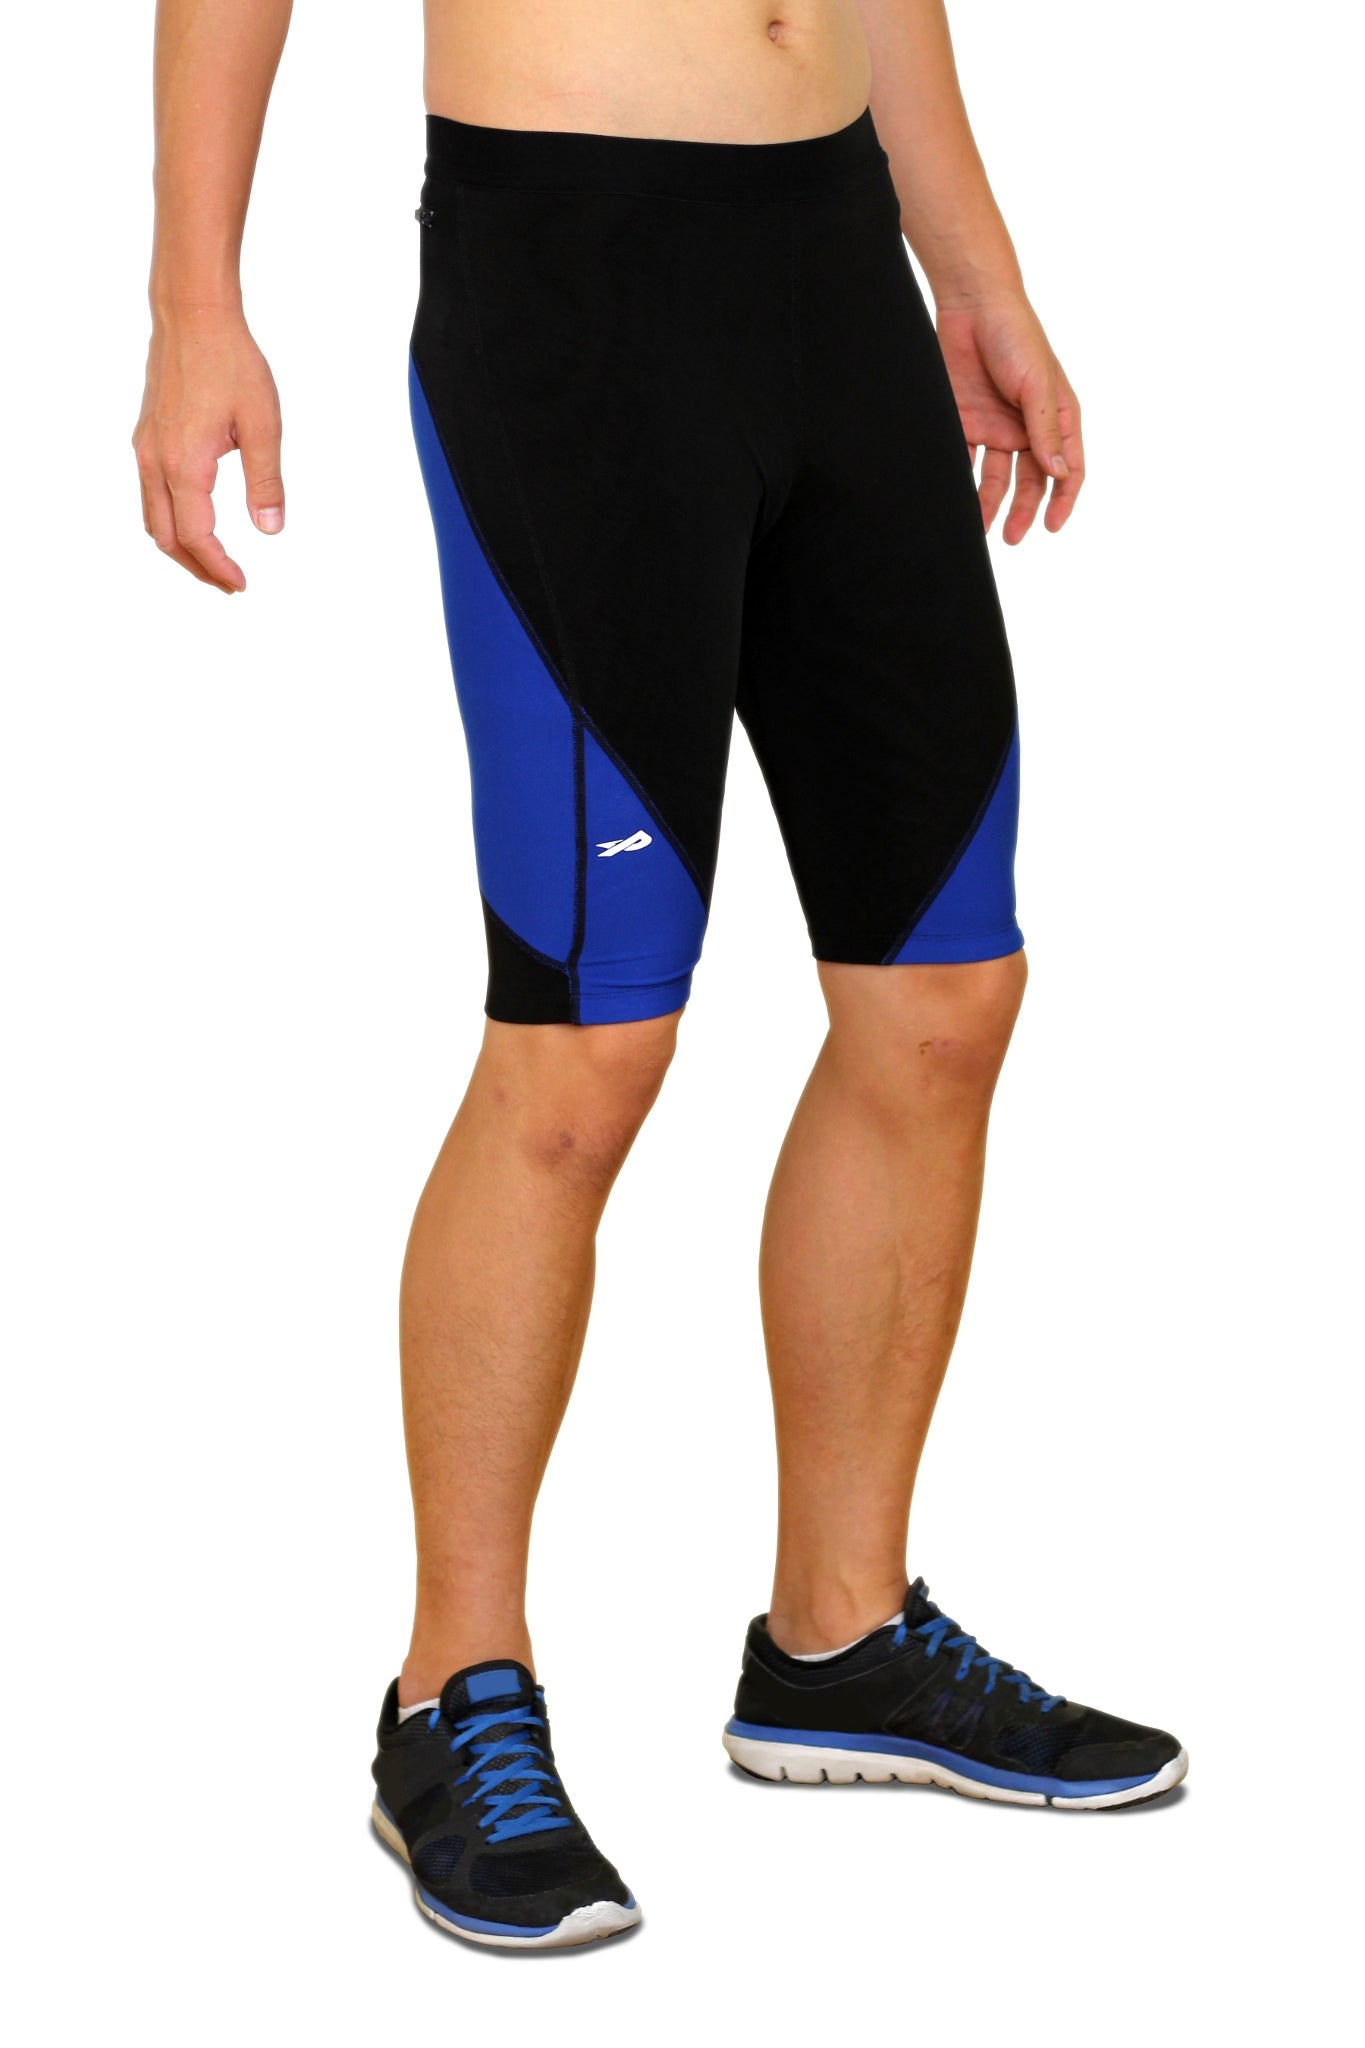 Pro Resistance Shorts for Men - Navy Blue